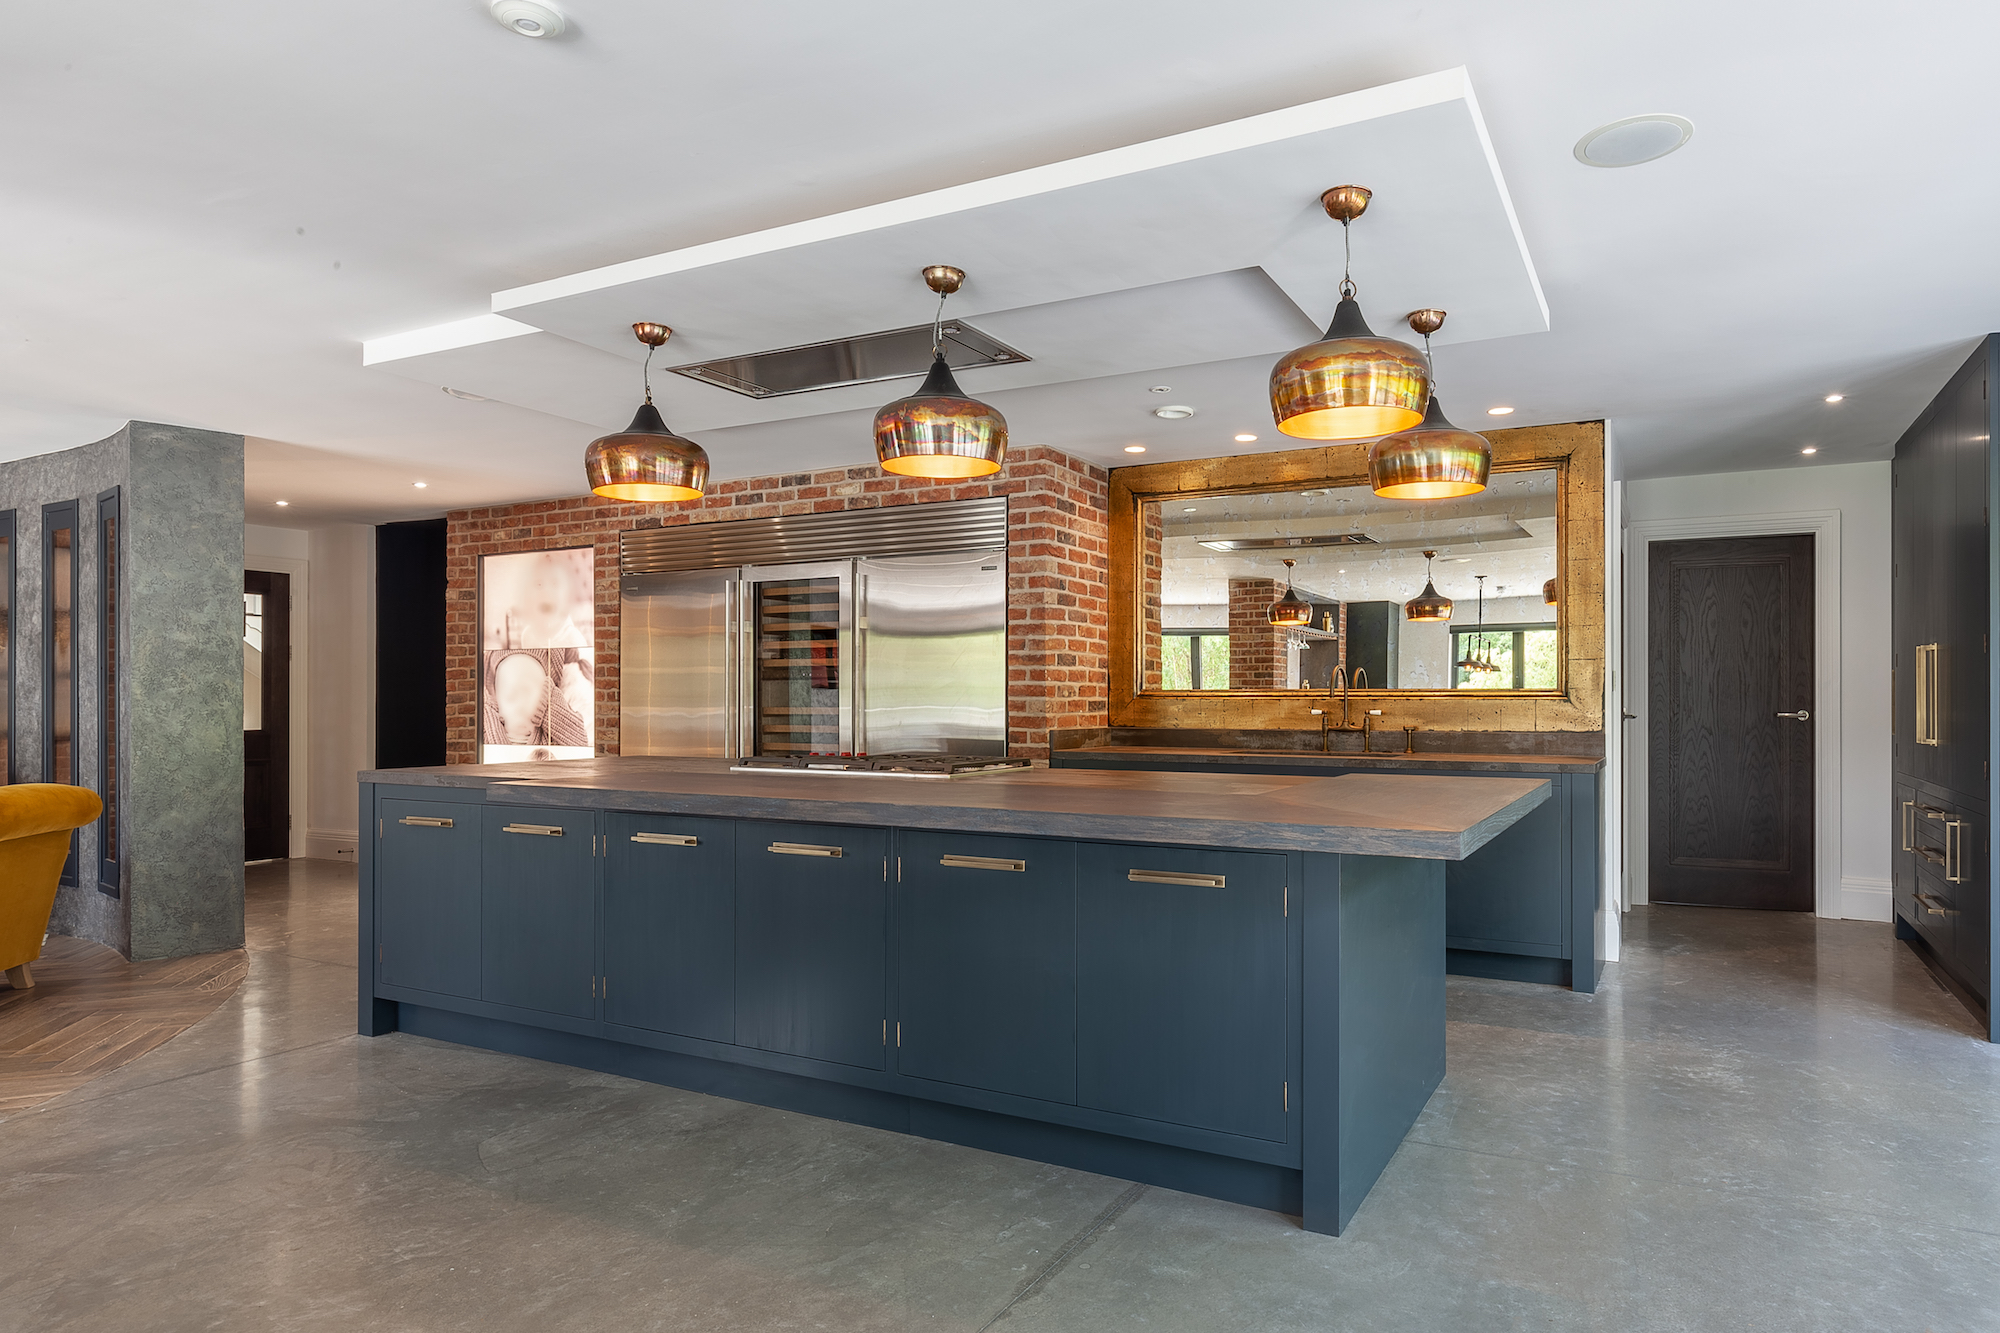 Hand Painted Industrial Kitchen - Prestbury, Cheshire